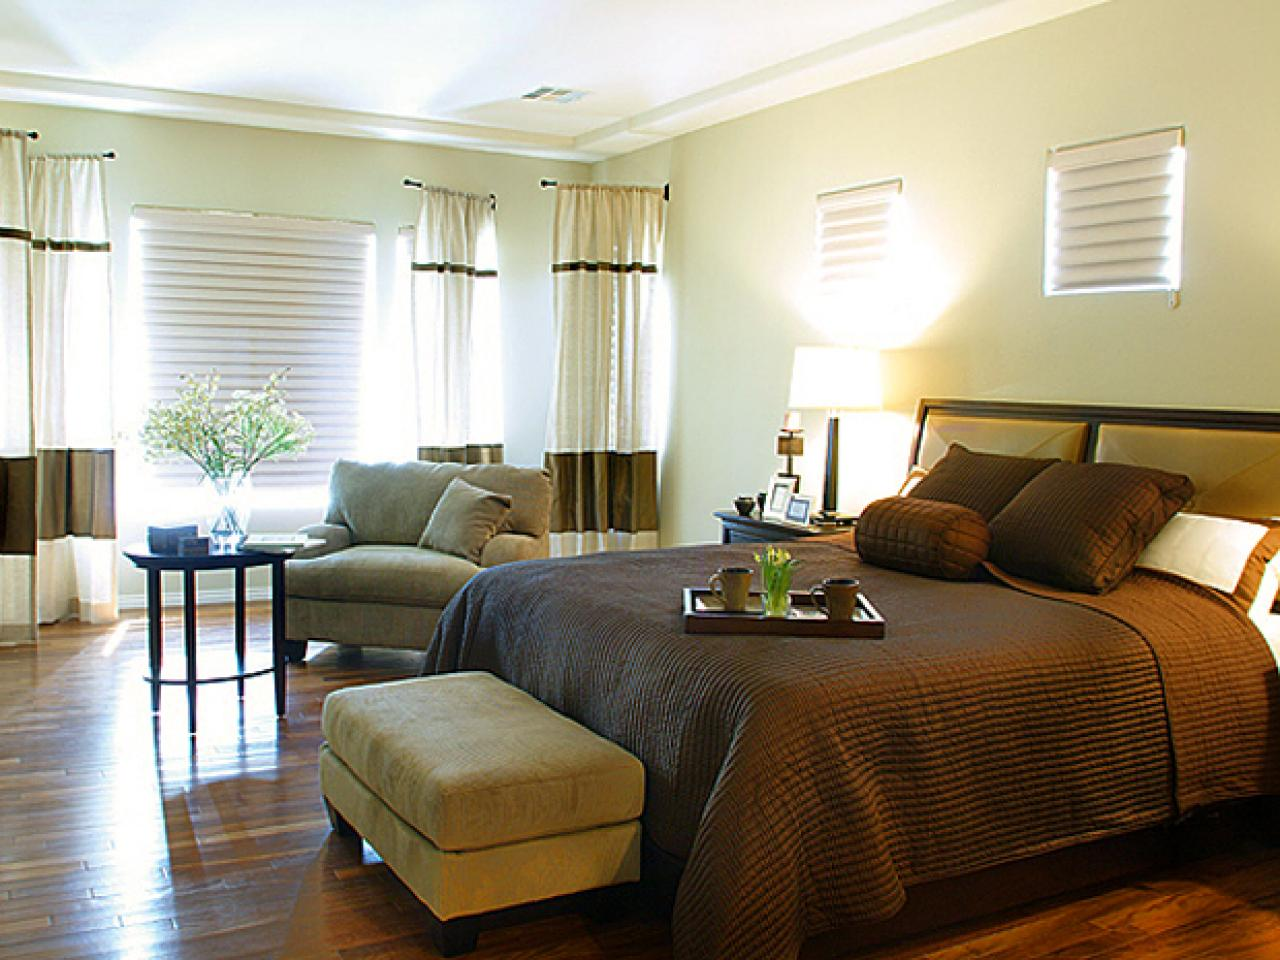 Designer Tips for an Ideal Bedroom Layout